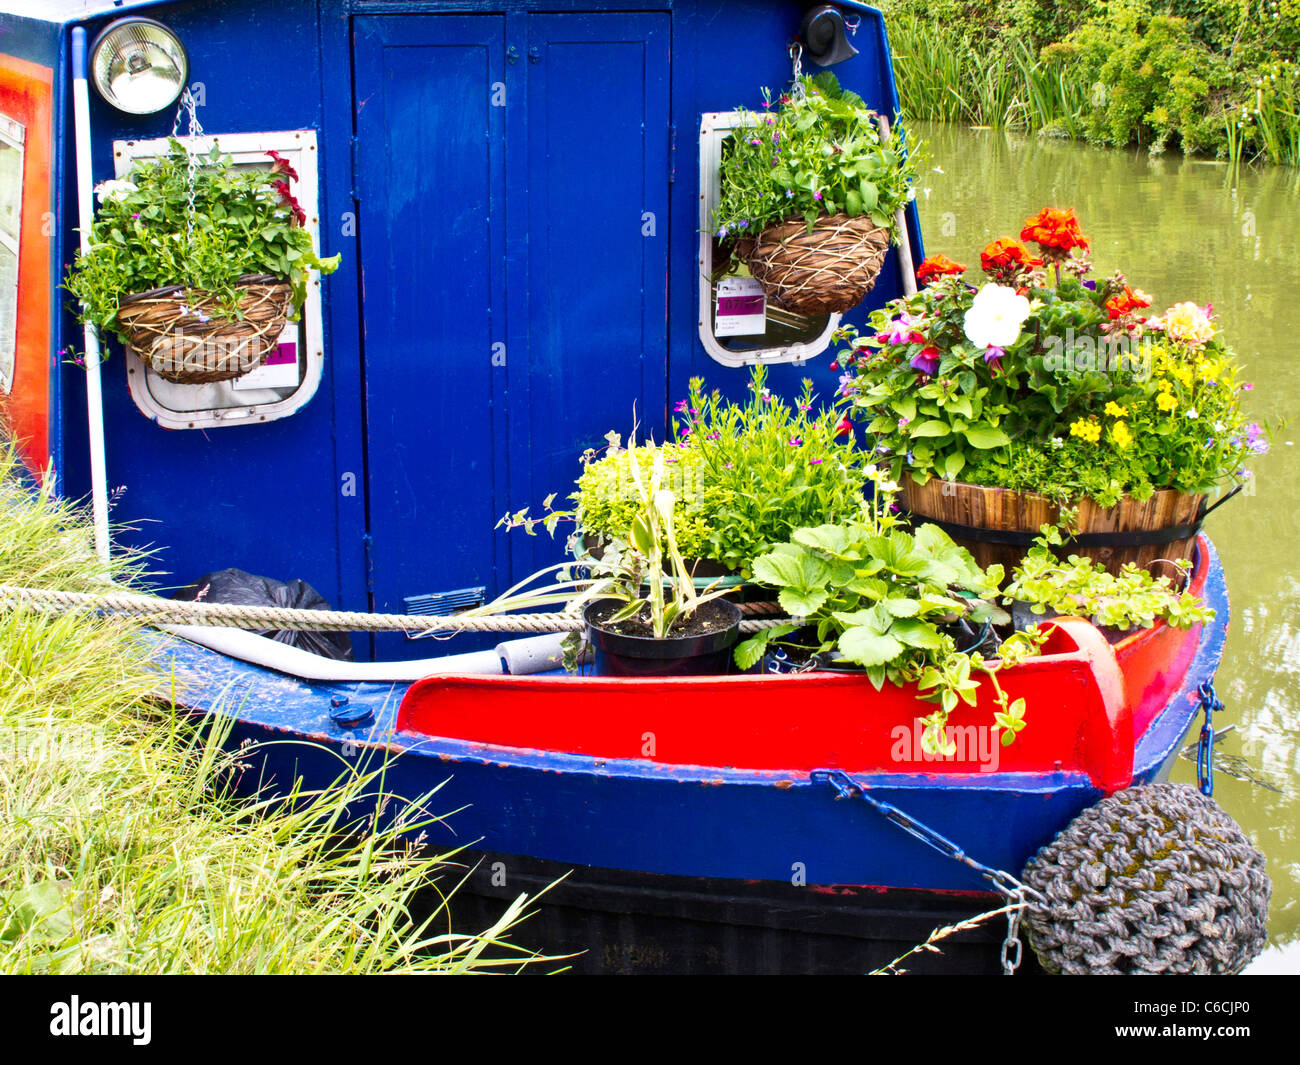 The colourful prow of a narrowboat with plant containers and flower pots moored along a canal bank - Stock Image